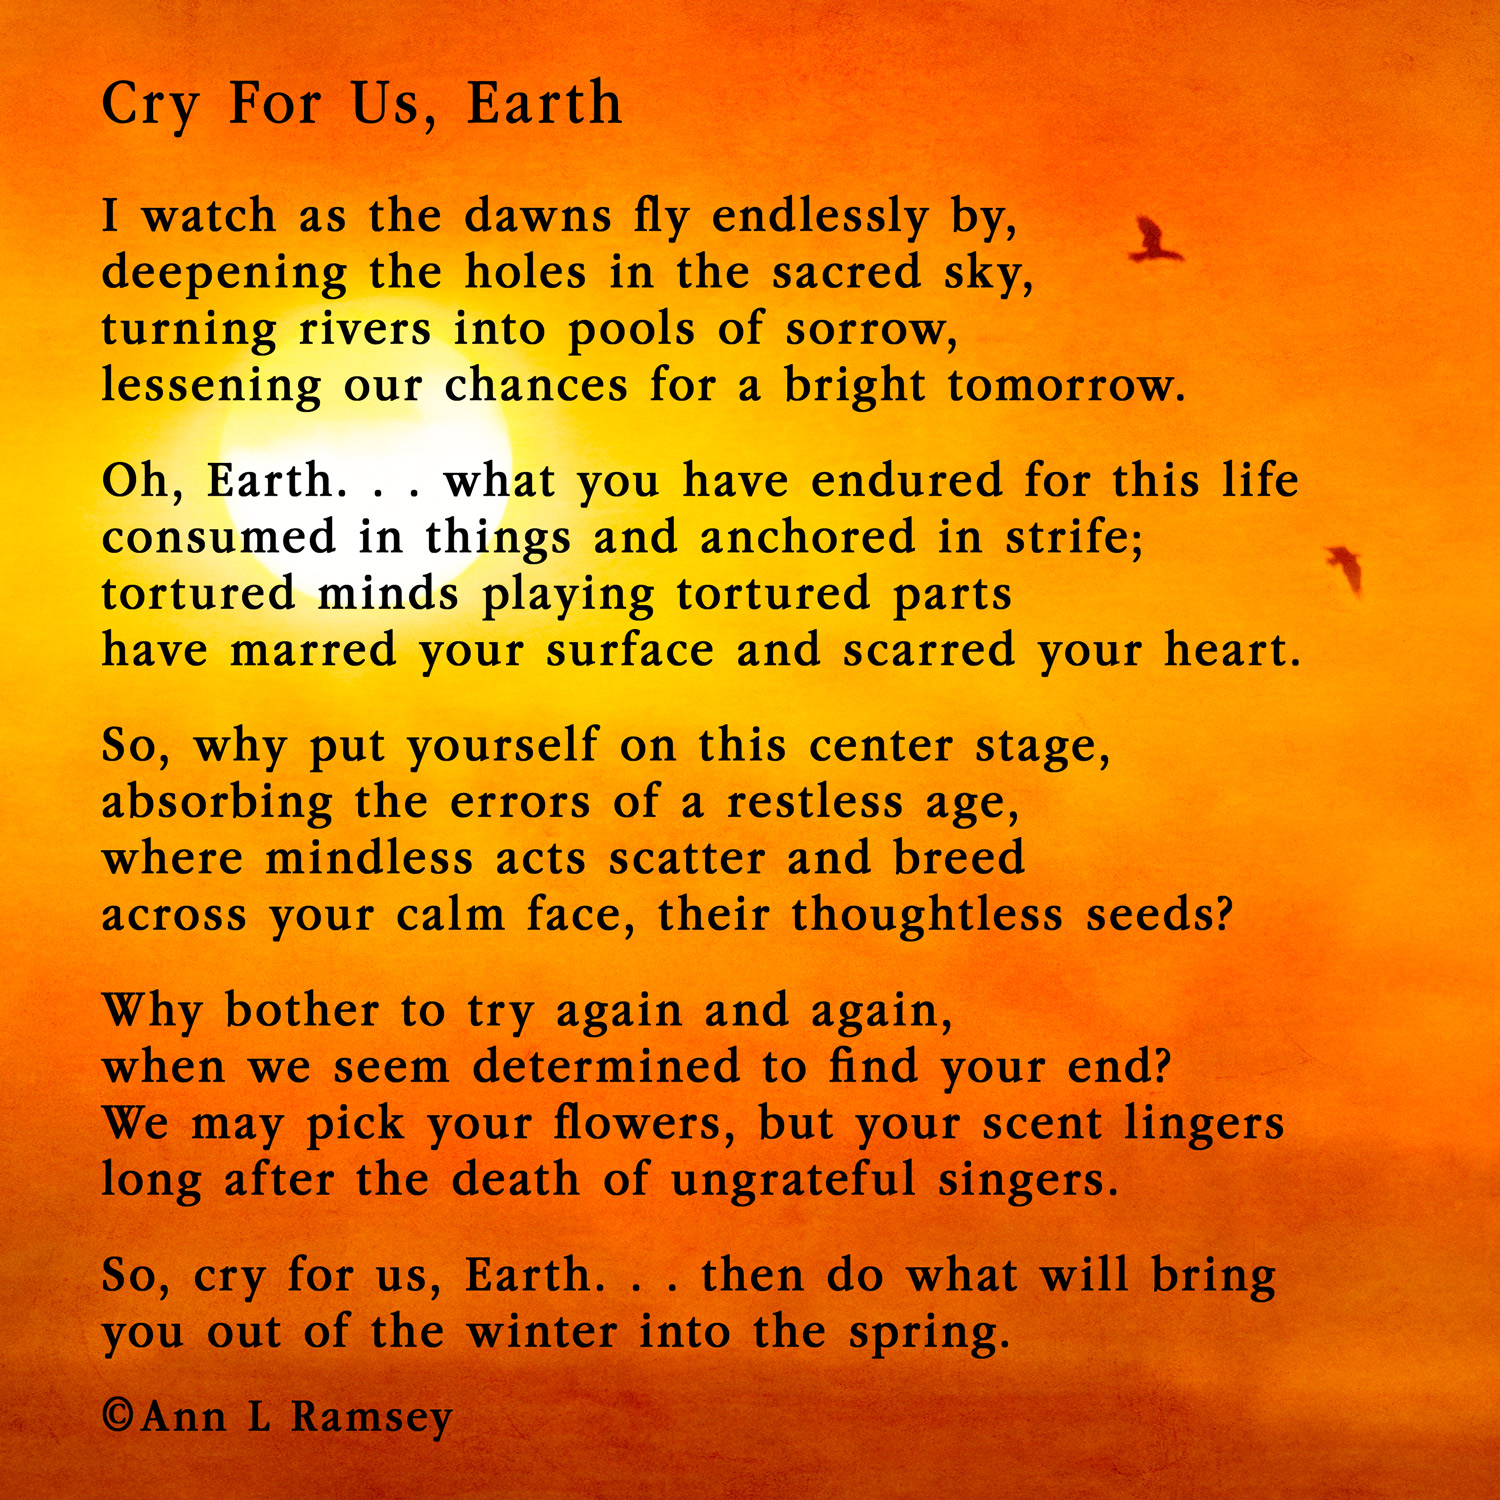 Cry For Us, Earth